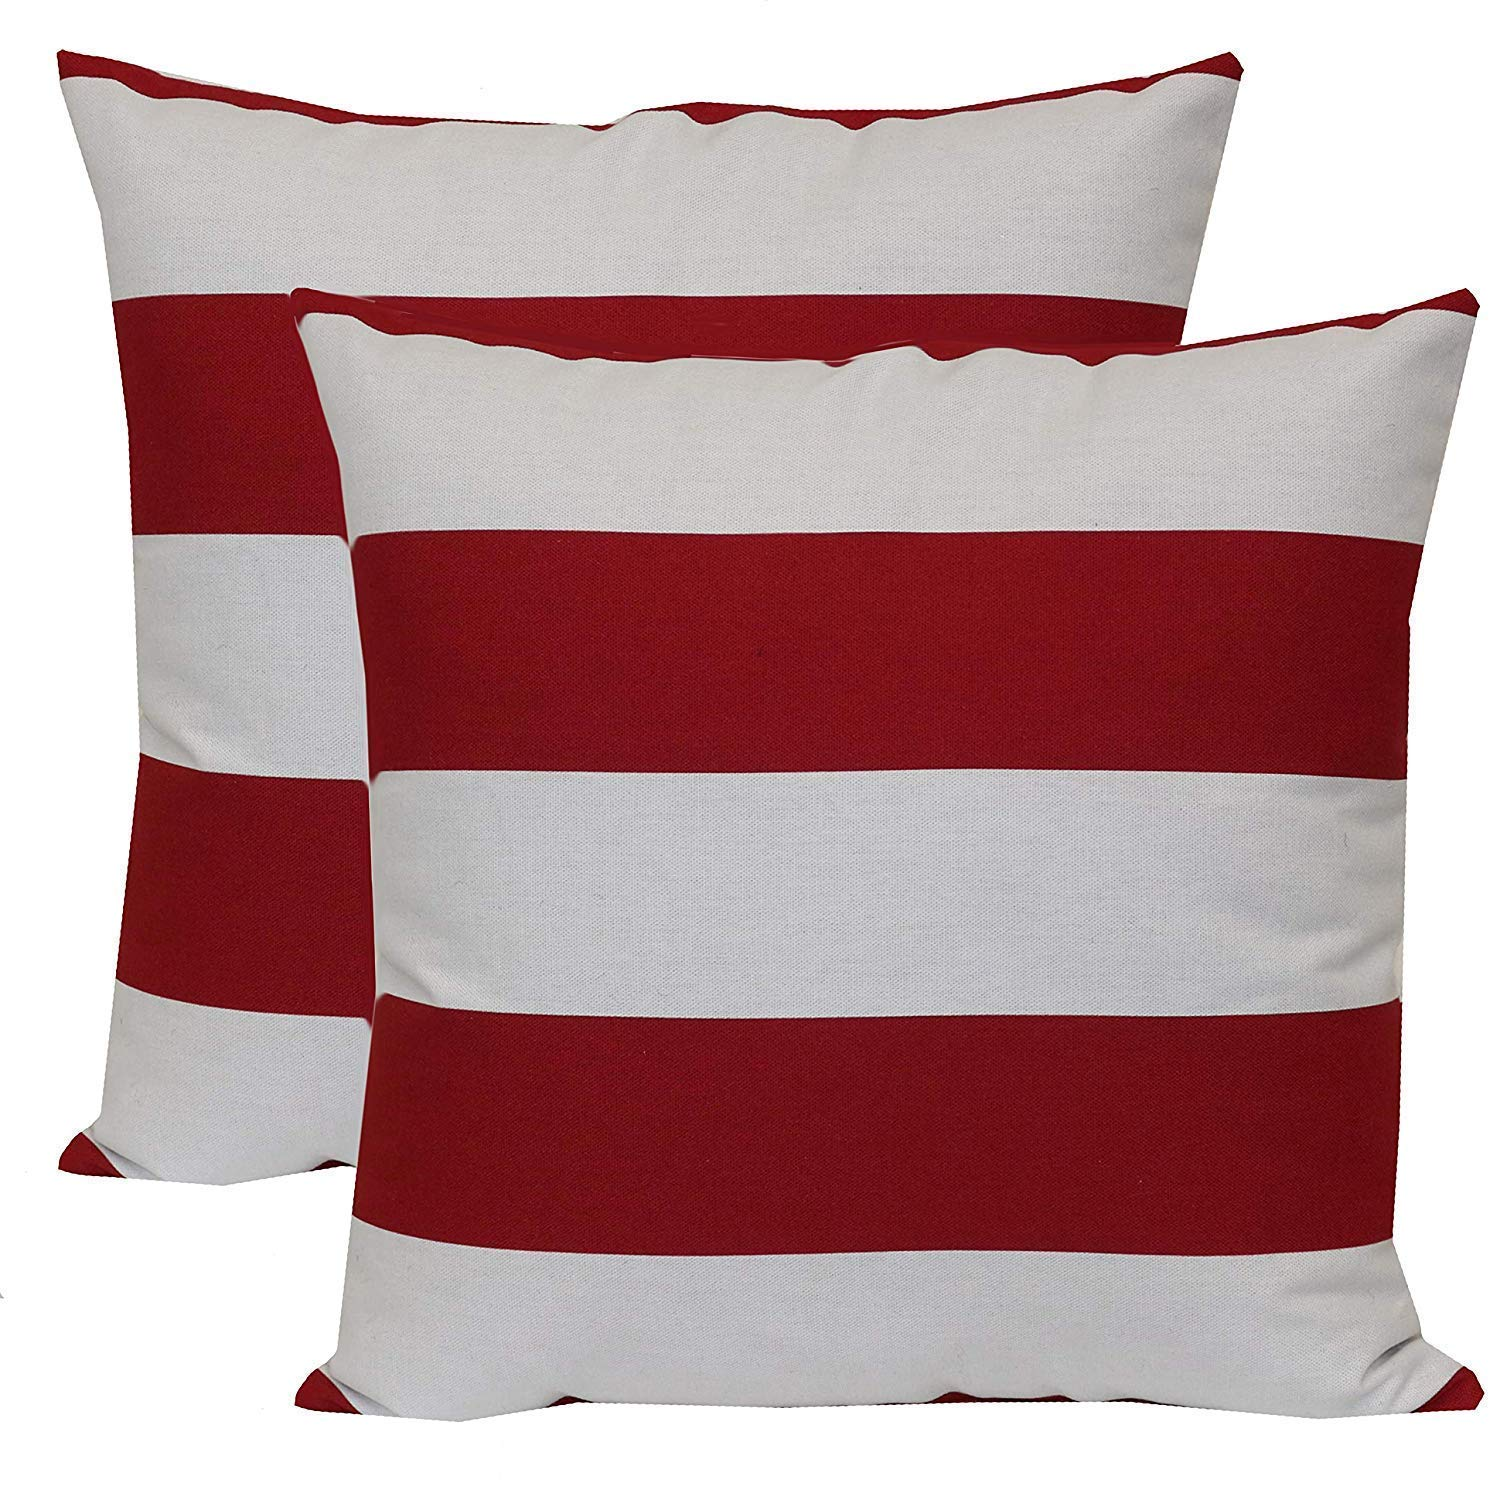 Mainstay* Patio Three Person Forest Hills Steel Porch Swing Plush Cushions in Red Stripe w// 16 x 16 Outdoor Toss Pillow Balboa Stripe Set of 2 Bundle Set